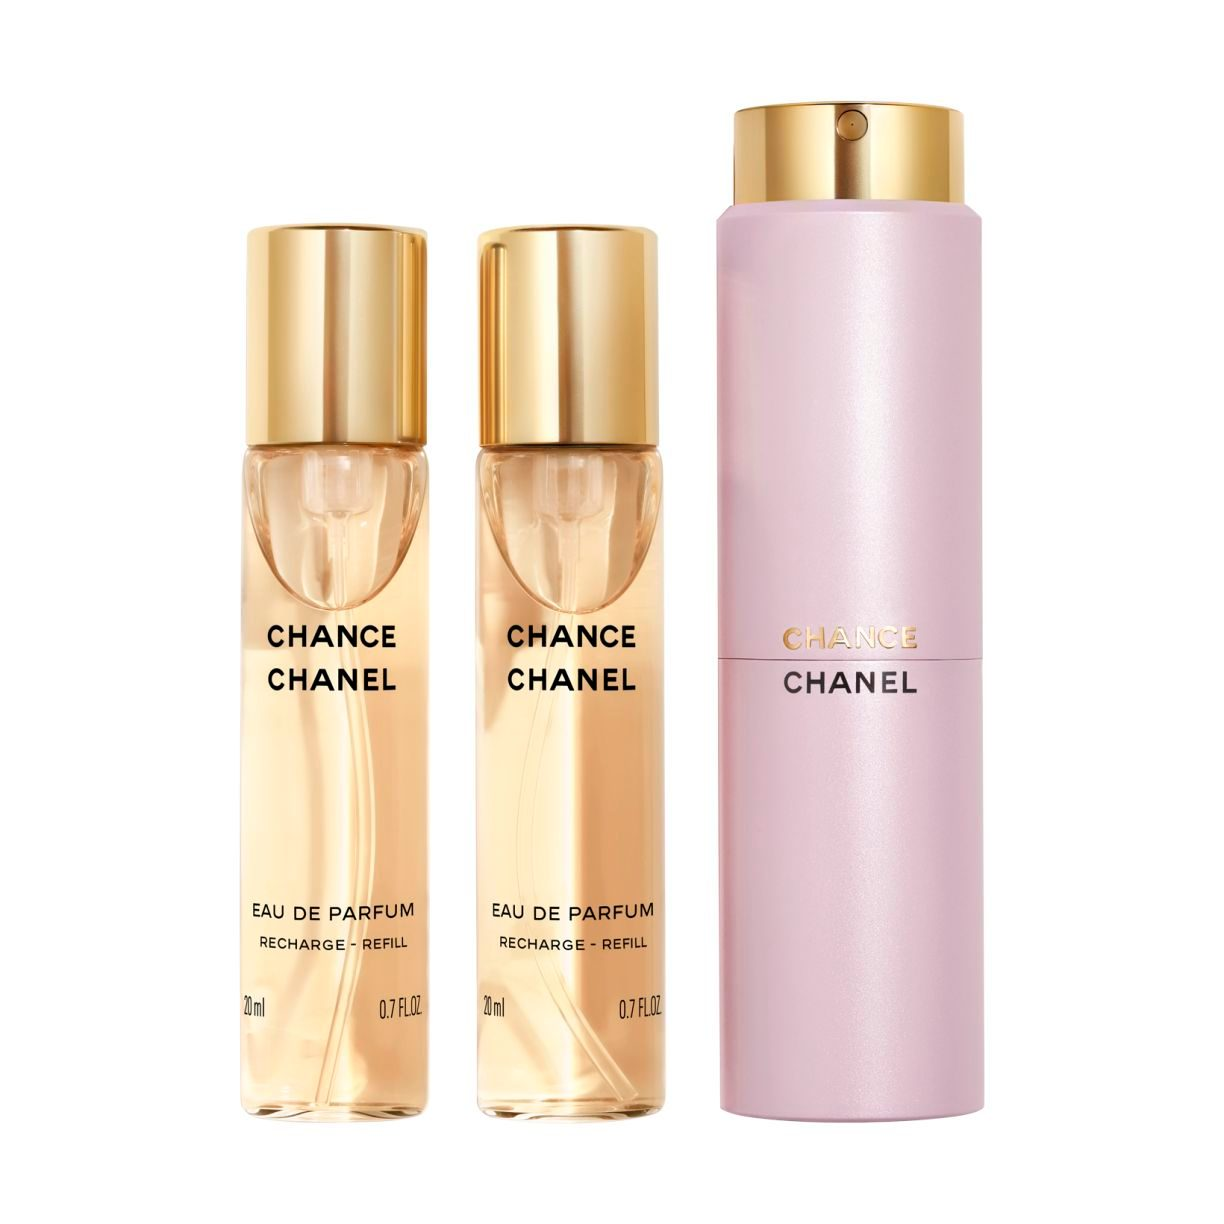 CHANCE EAU DE PARFUM TWIST AND SPRAY 3x20ml